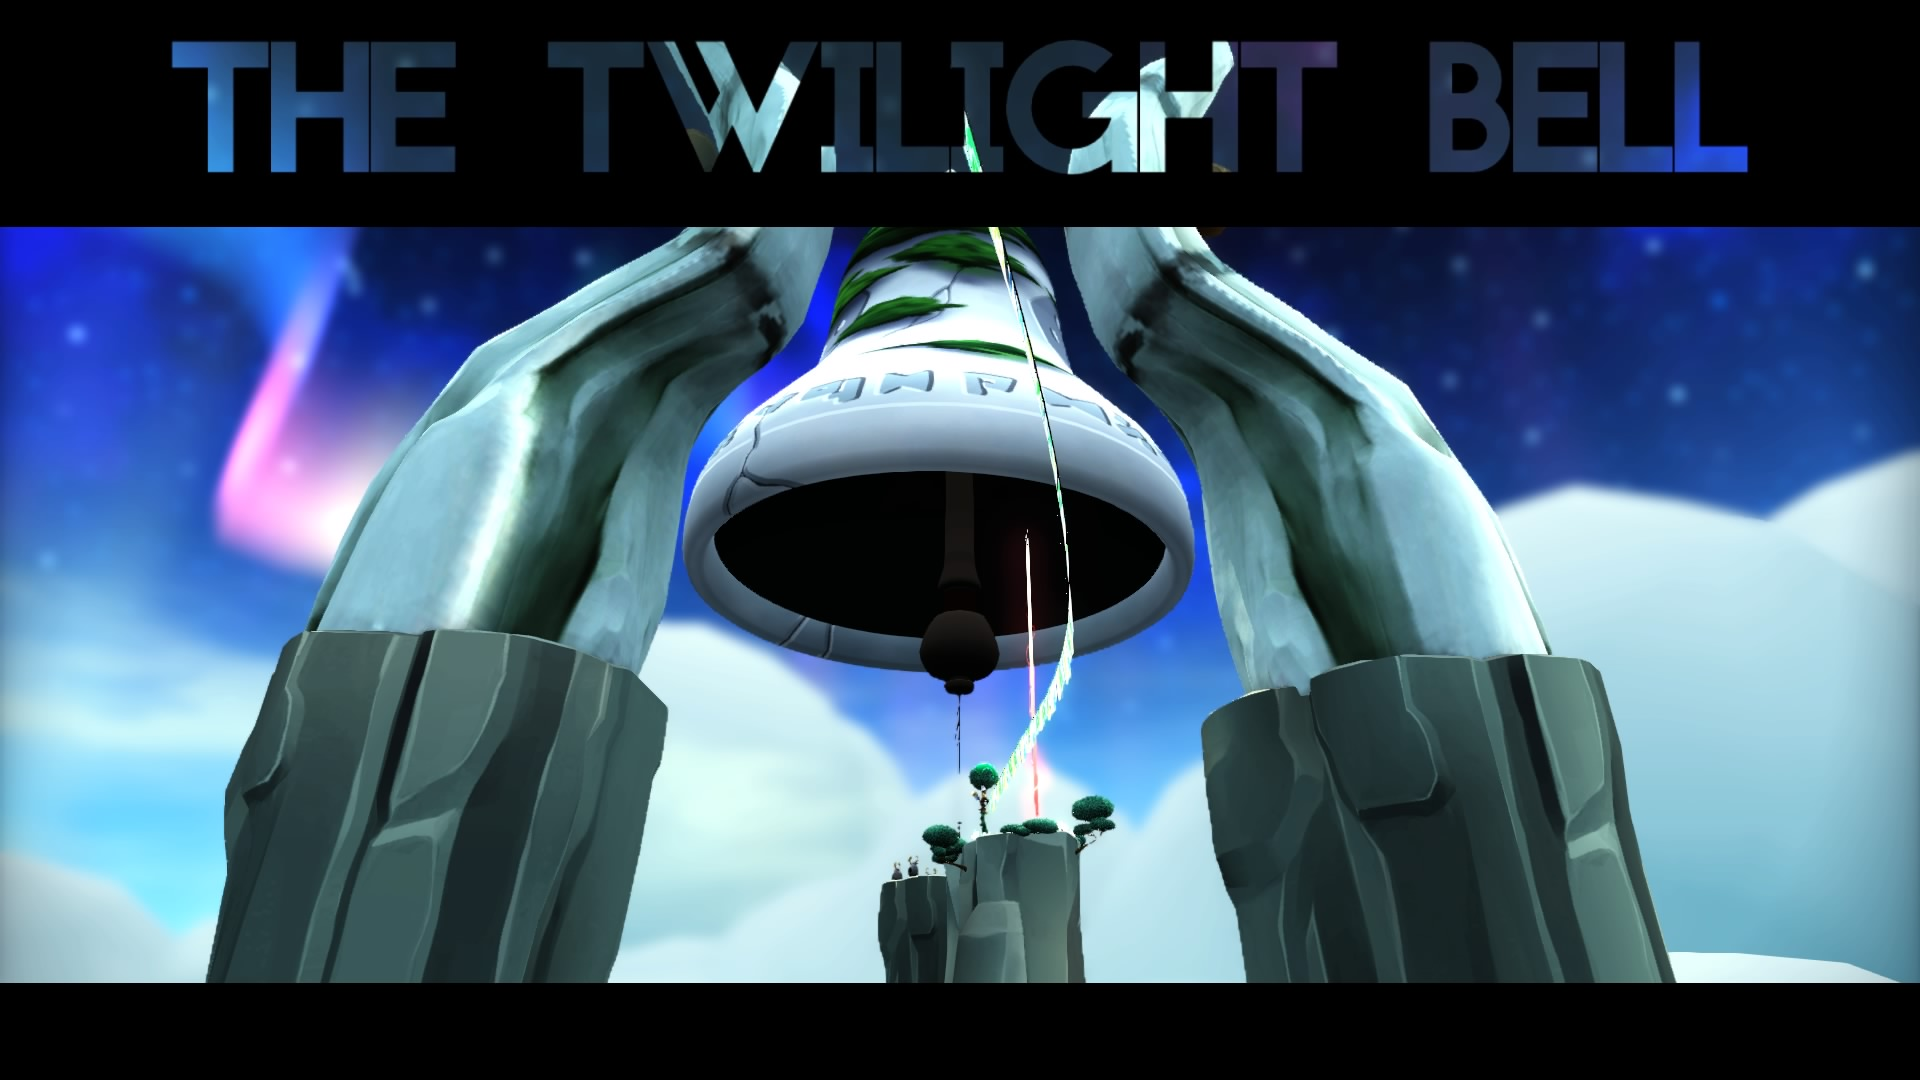 The Twilight Bell